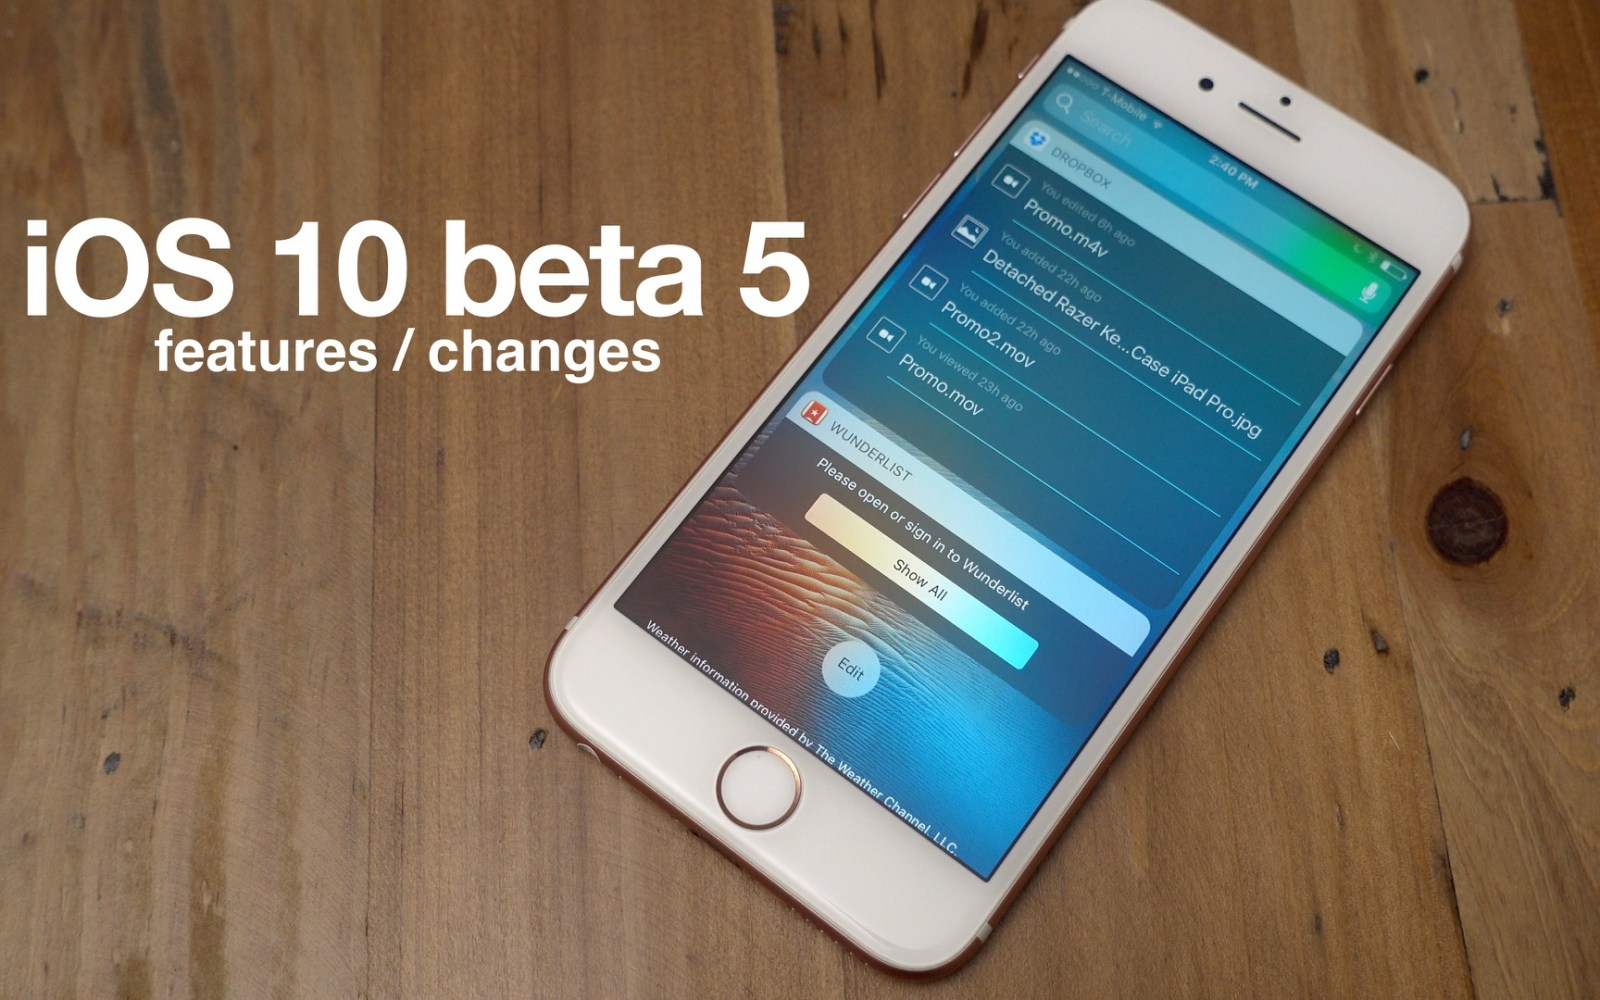 Hands-on: New iOS 10 beta 5 features + changes [Video]